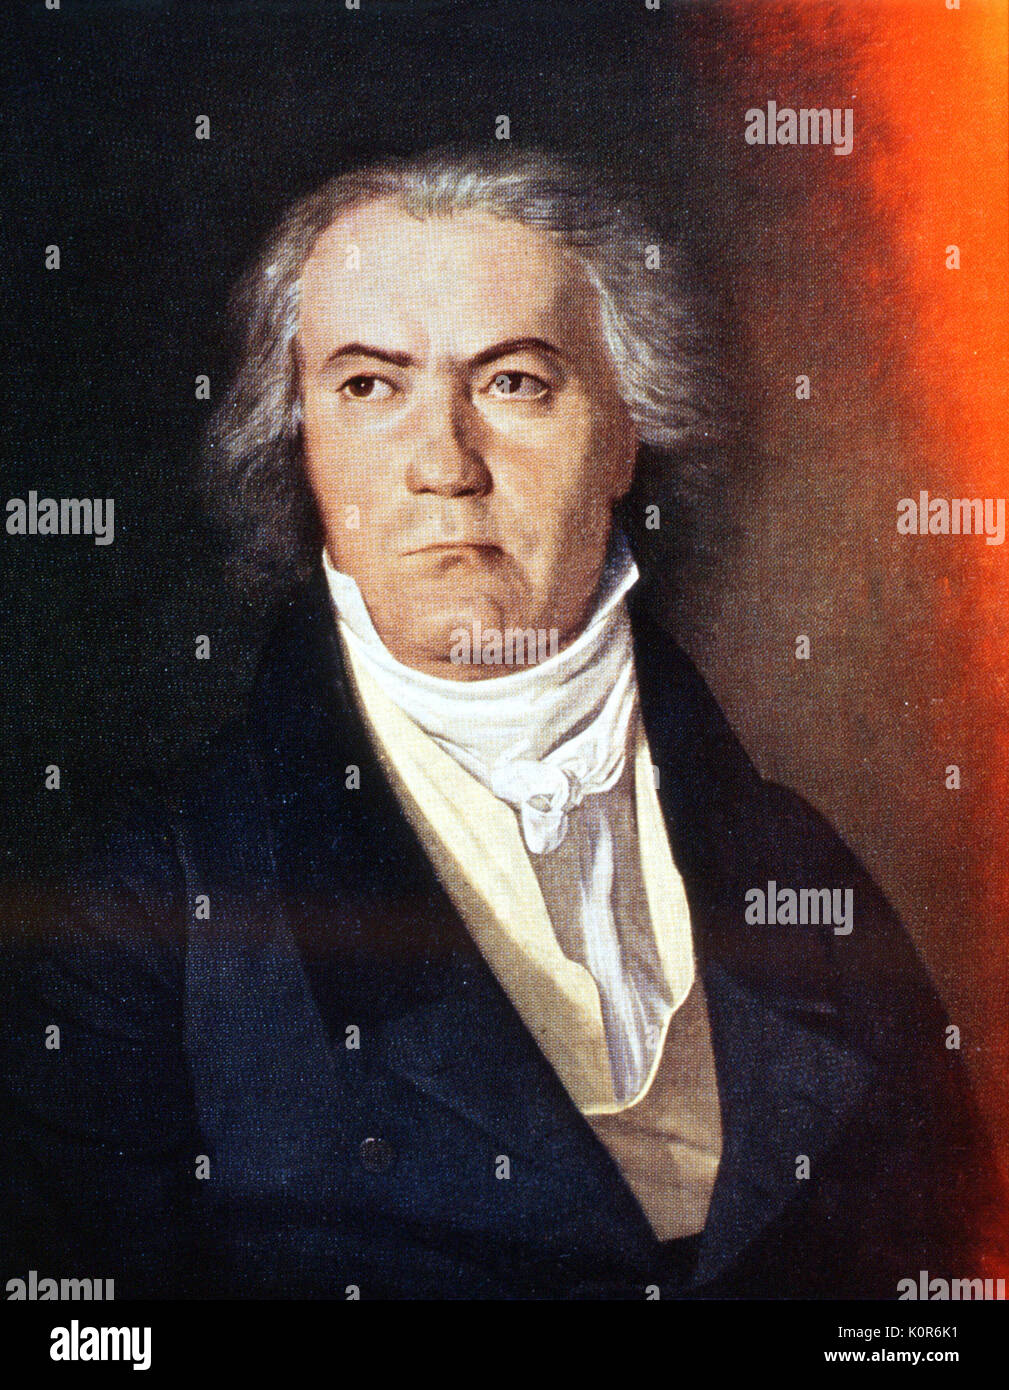 Beethoven, Ludwig van.  By Waldmuller F.G. in 1823. Portrait executed after one sitting.  B was'impatient with every passing minute,fuming & foaming around the room' Beethoven 1770-1827 German Composer. Ferdinand Georg Waldmüller 1793-1865 - Stock Image